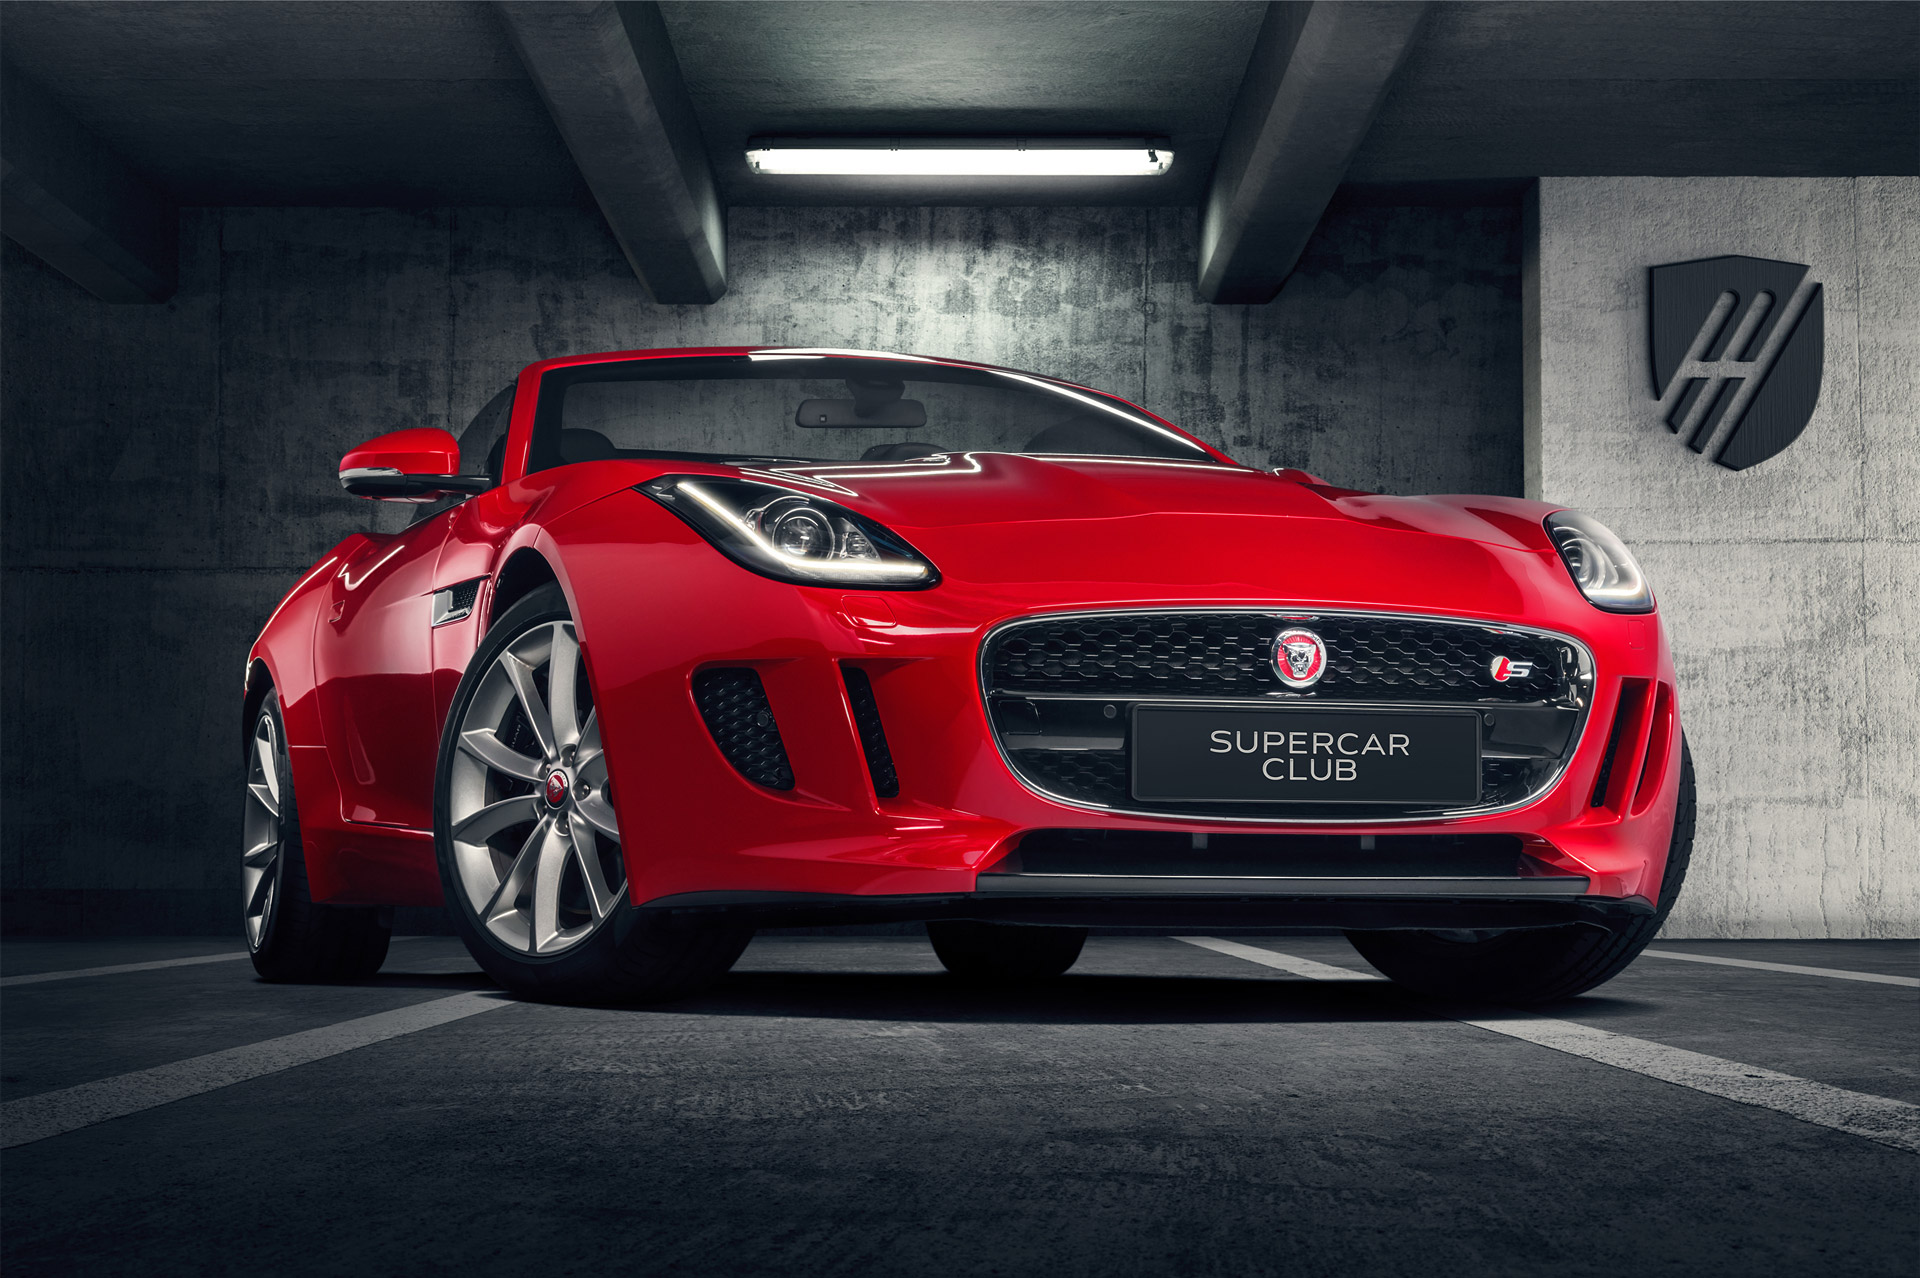 jaguar f type s cabrio supercar club poland. Black Bedroom Furniture Sets. Home Design Ideas